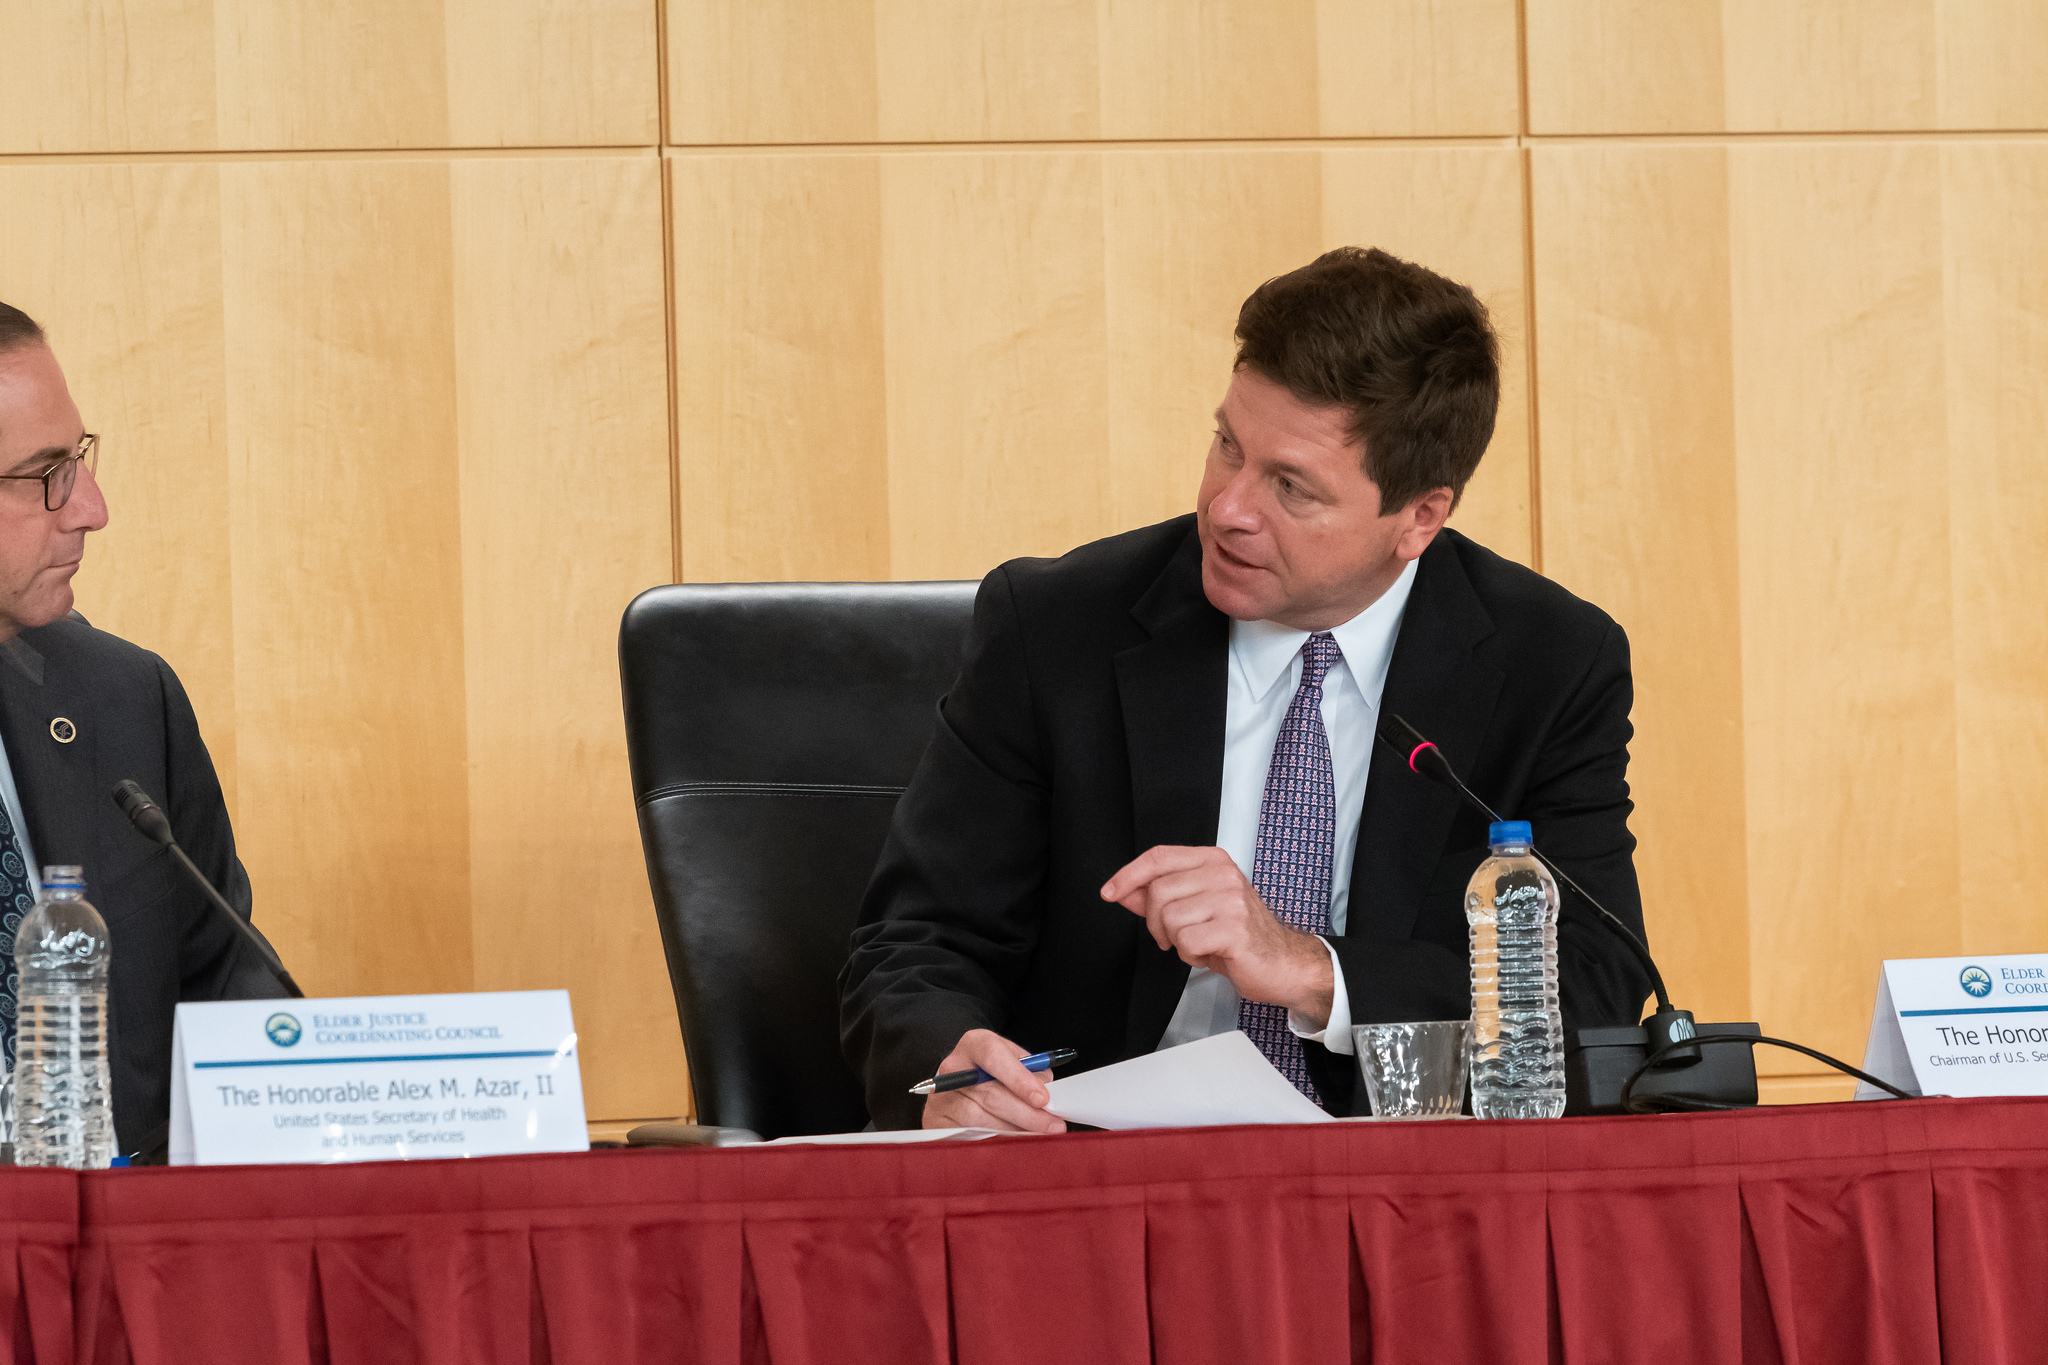 Jay Clayton at the Elder Justice Council meeting